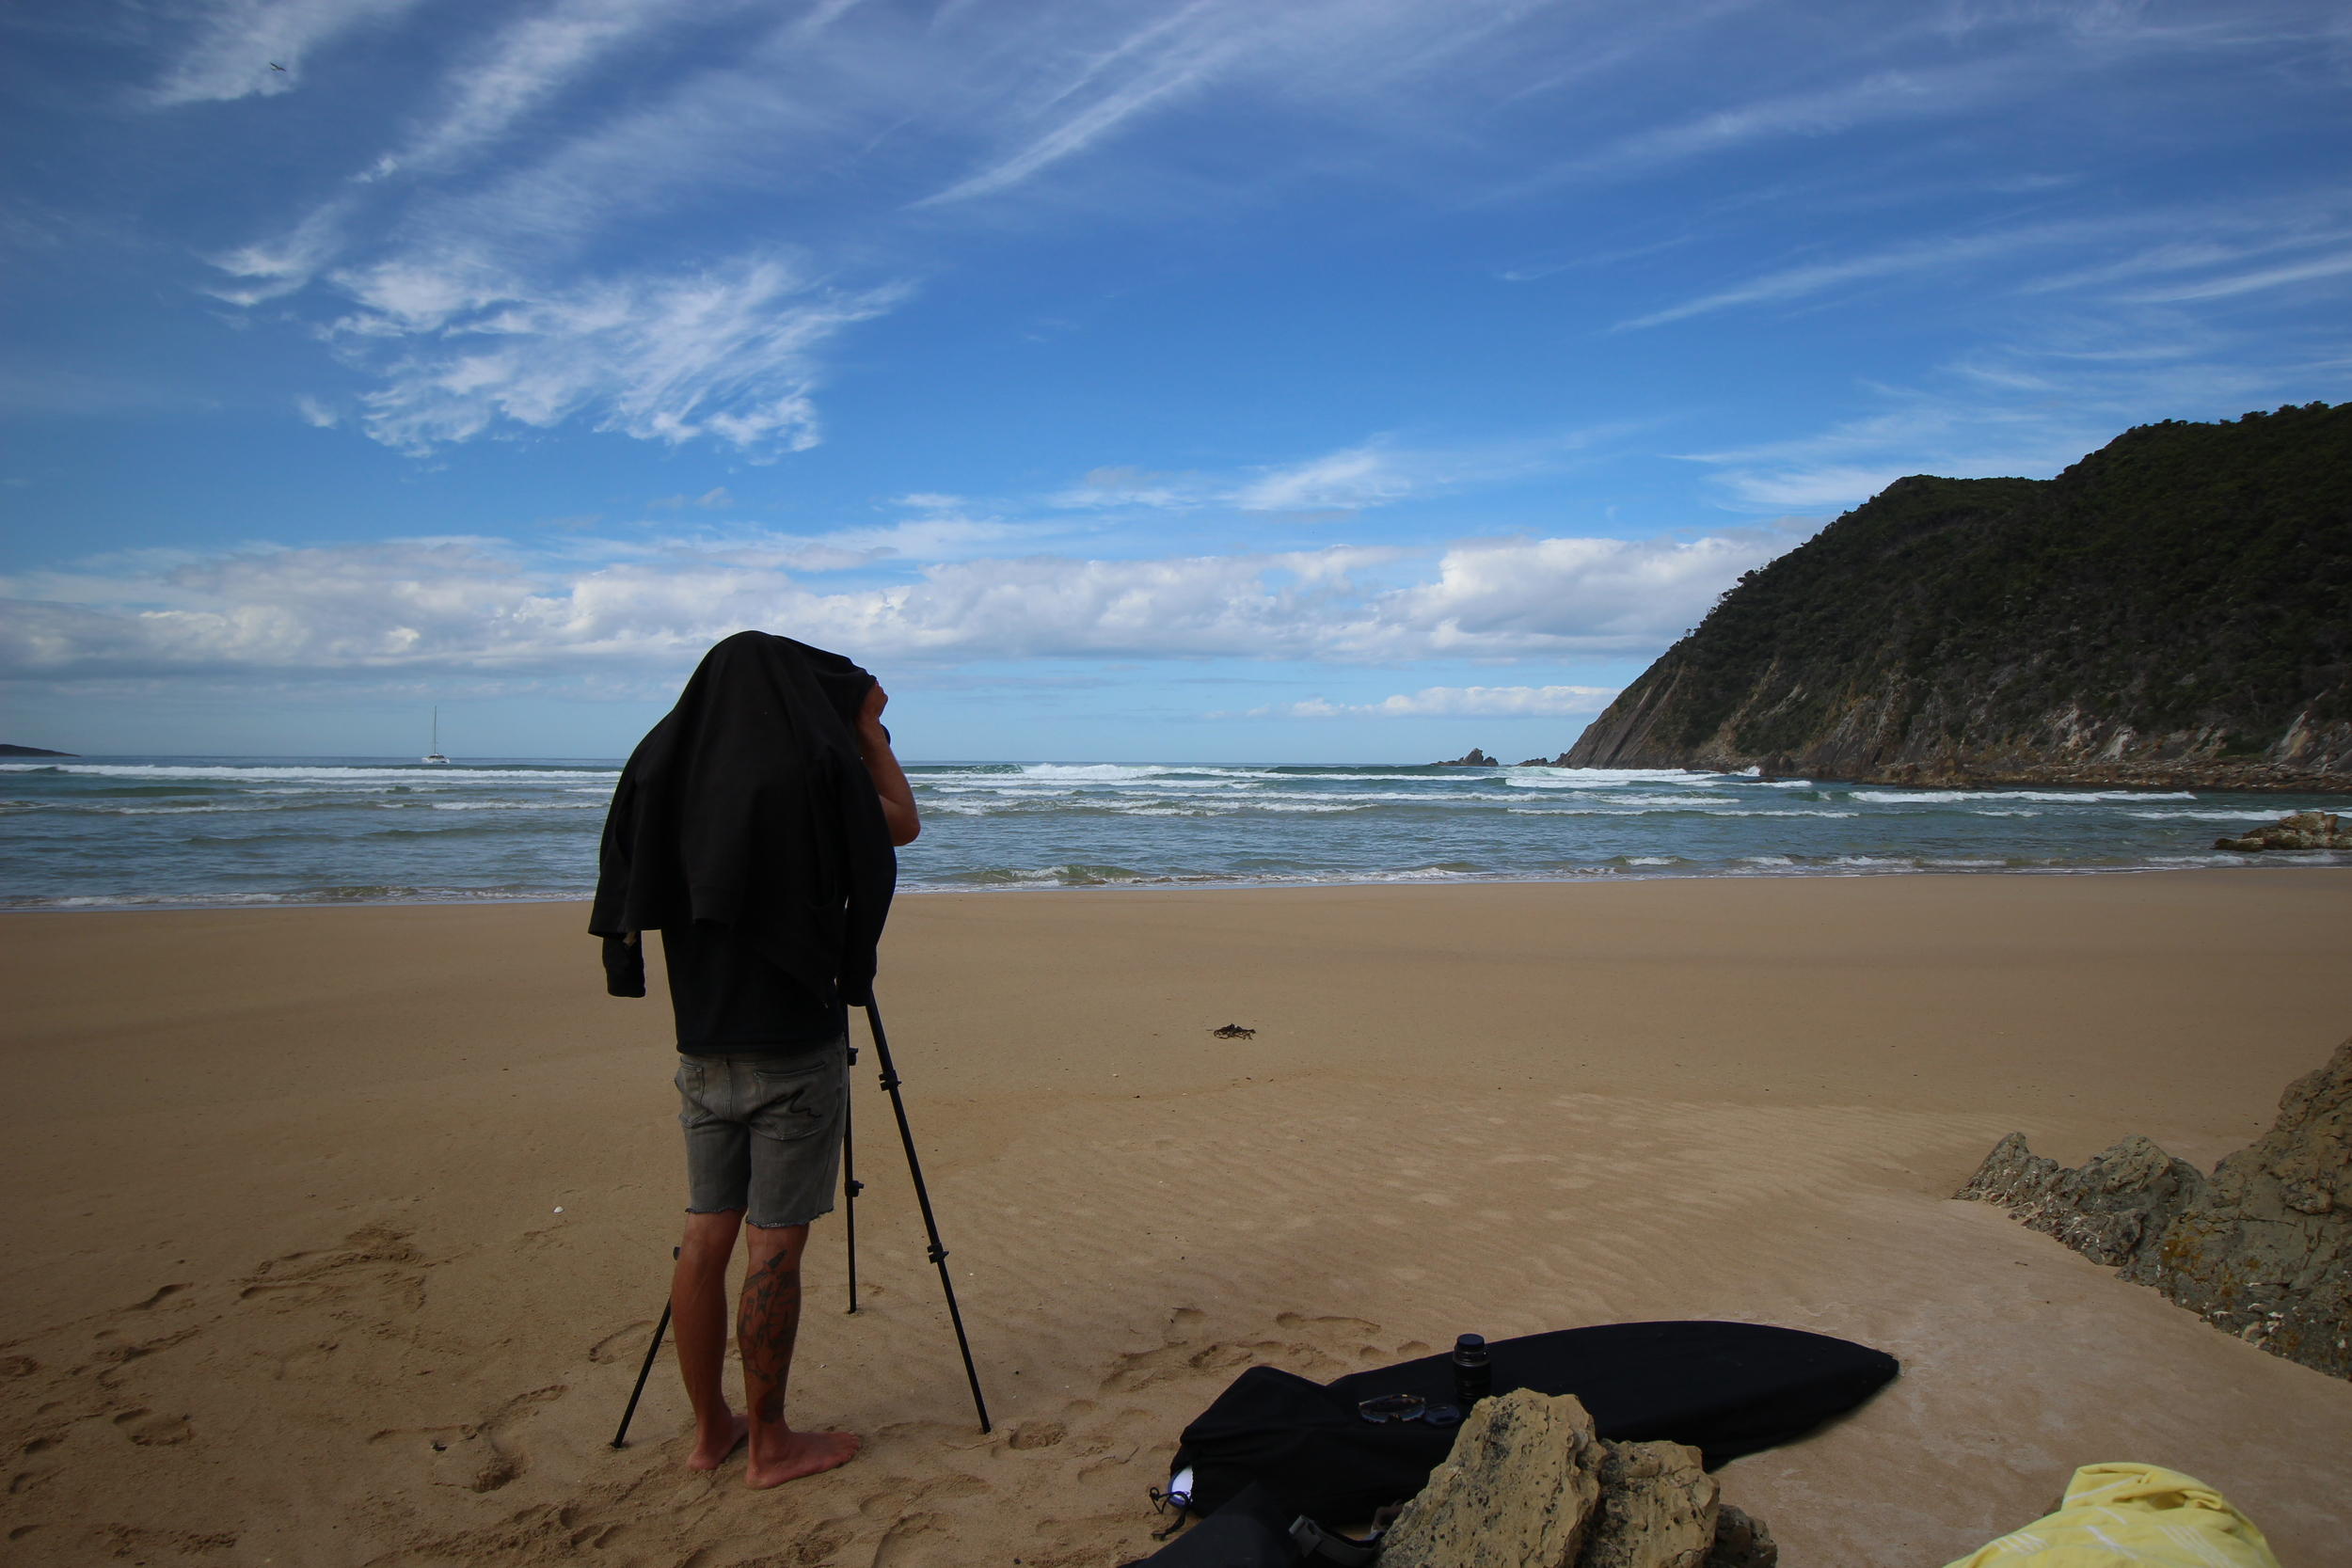 Andy setting up the camera at Surprise Bay to capture some surf footage at this remote break. Roam in the back ground.